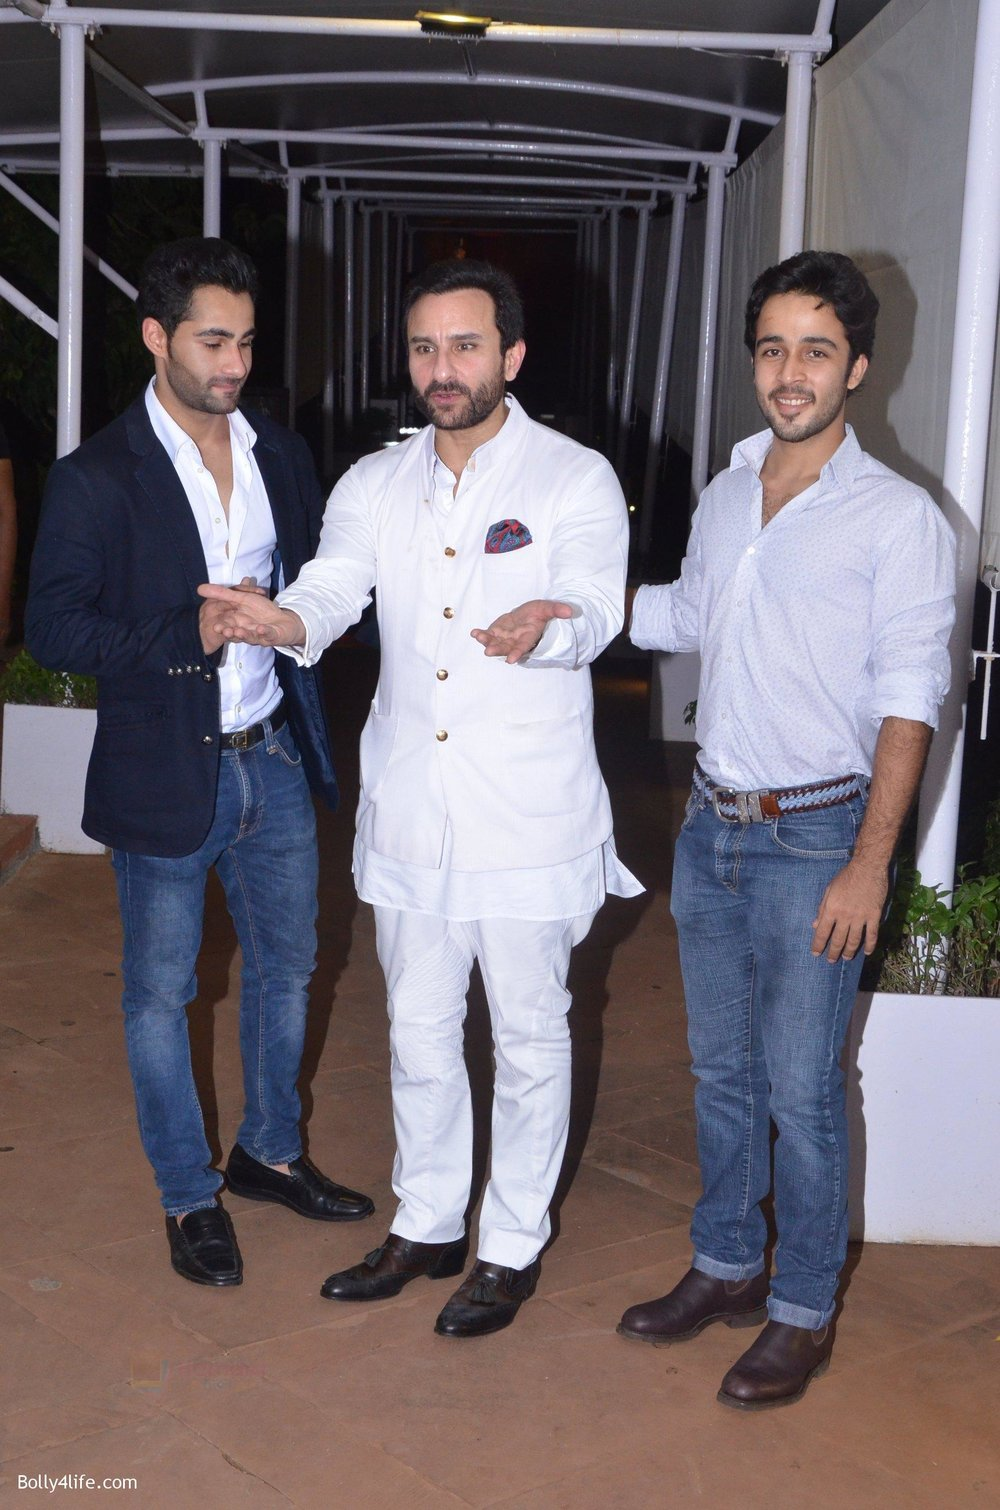 Saif-Ali-Khan-Armaan-Jain-at-Reema-jain-bday-party-in-Amadeus-NCPA-on-28th-Sept-2016-1088.jpg